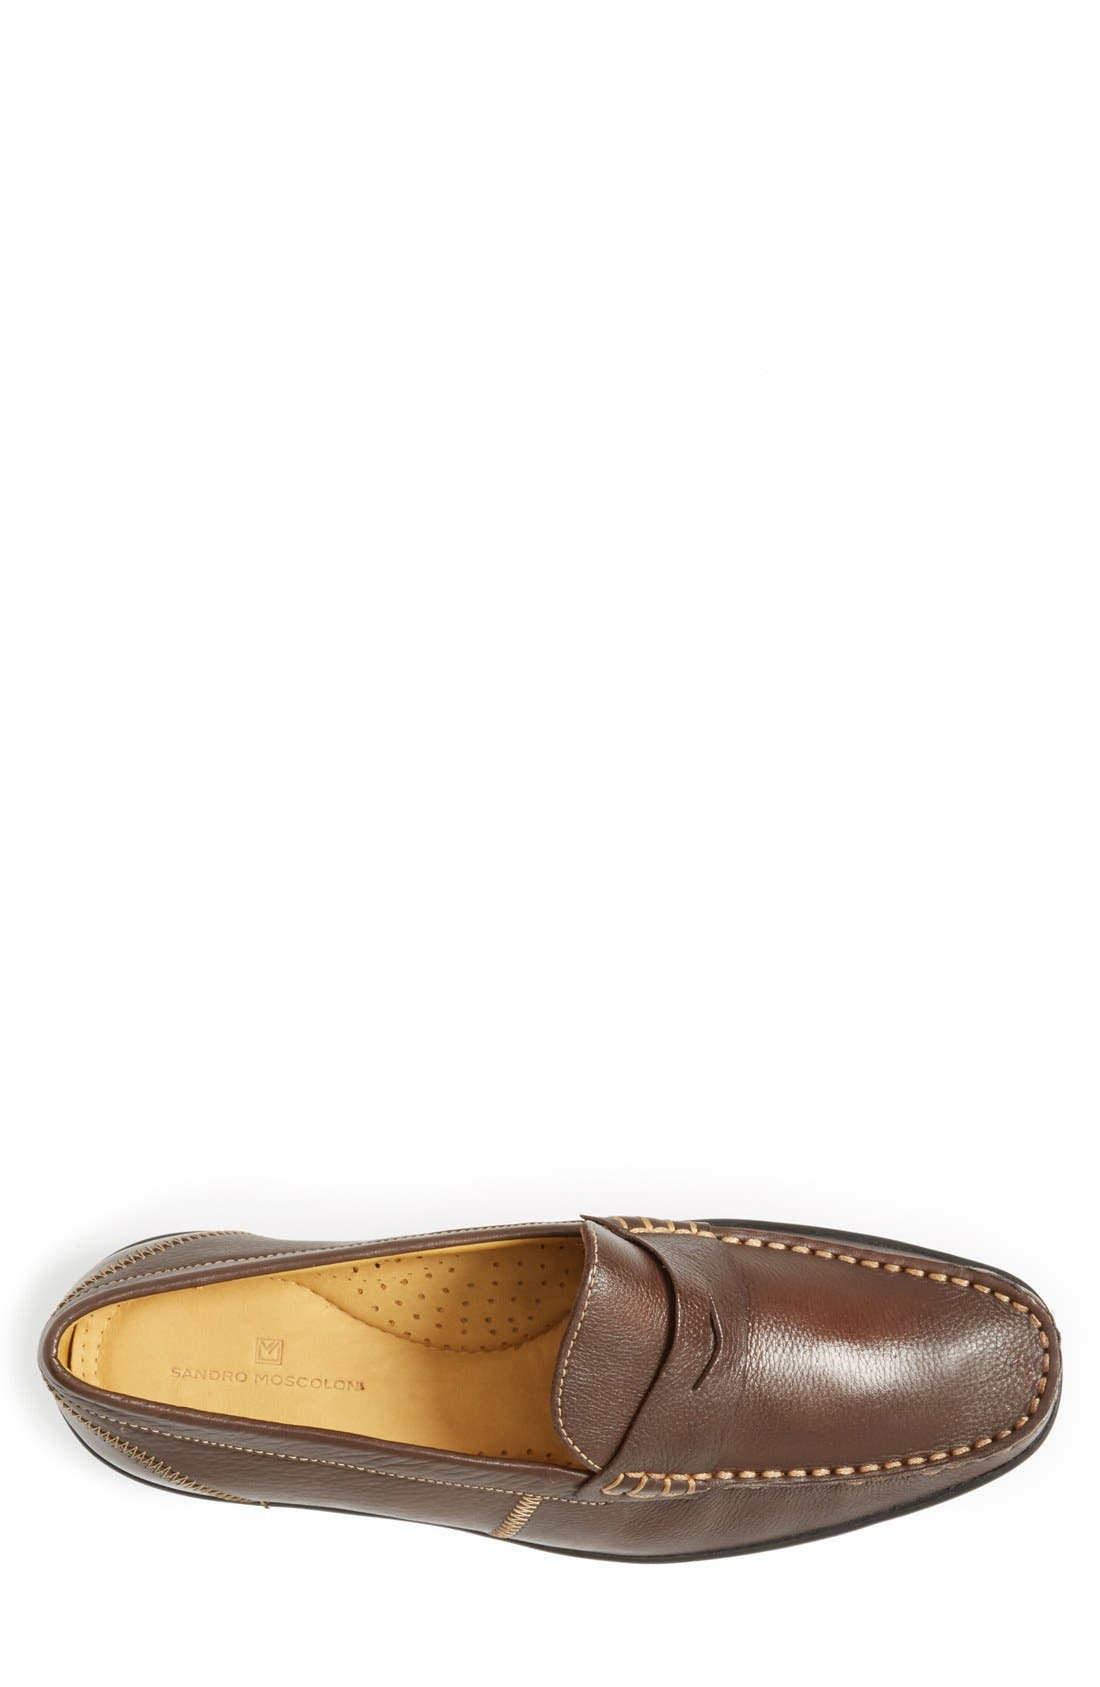 Alternate Image 3  - Sandro Moscoloni 'Bimini' Penny Loafer (Men)